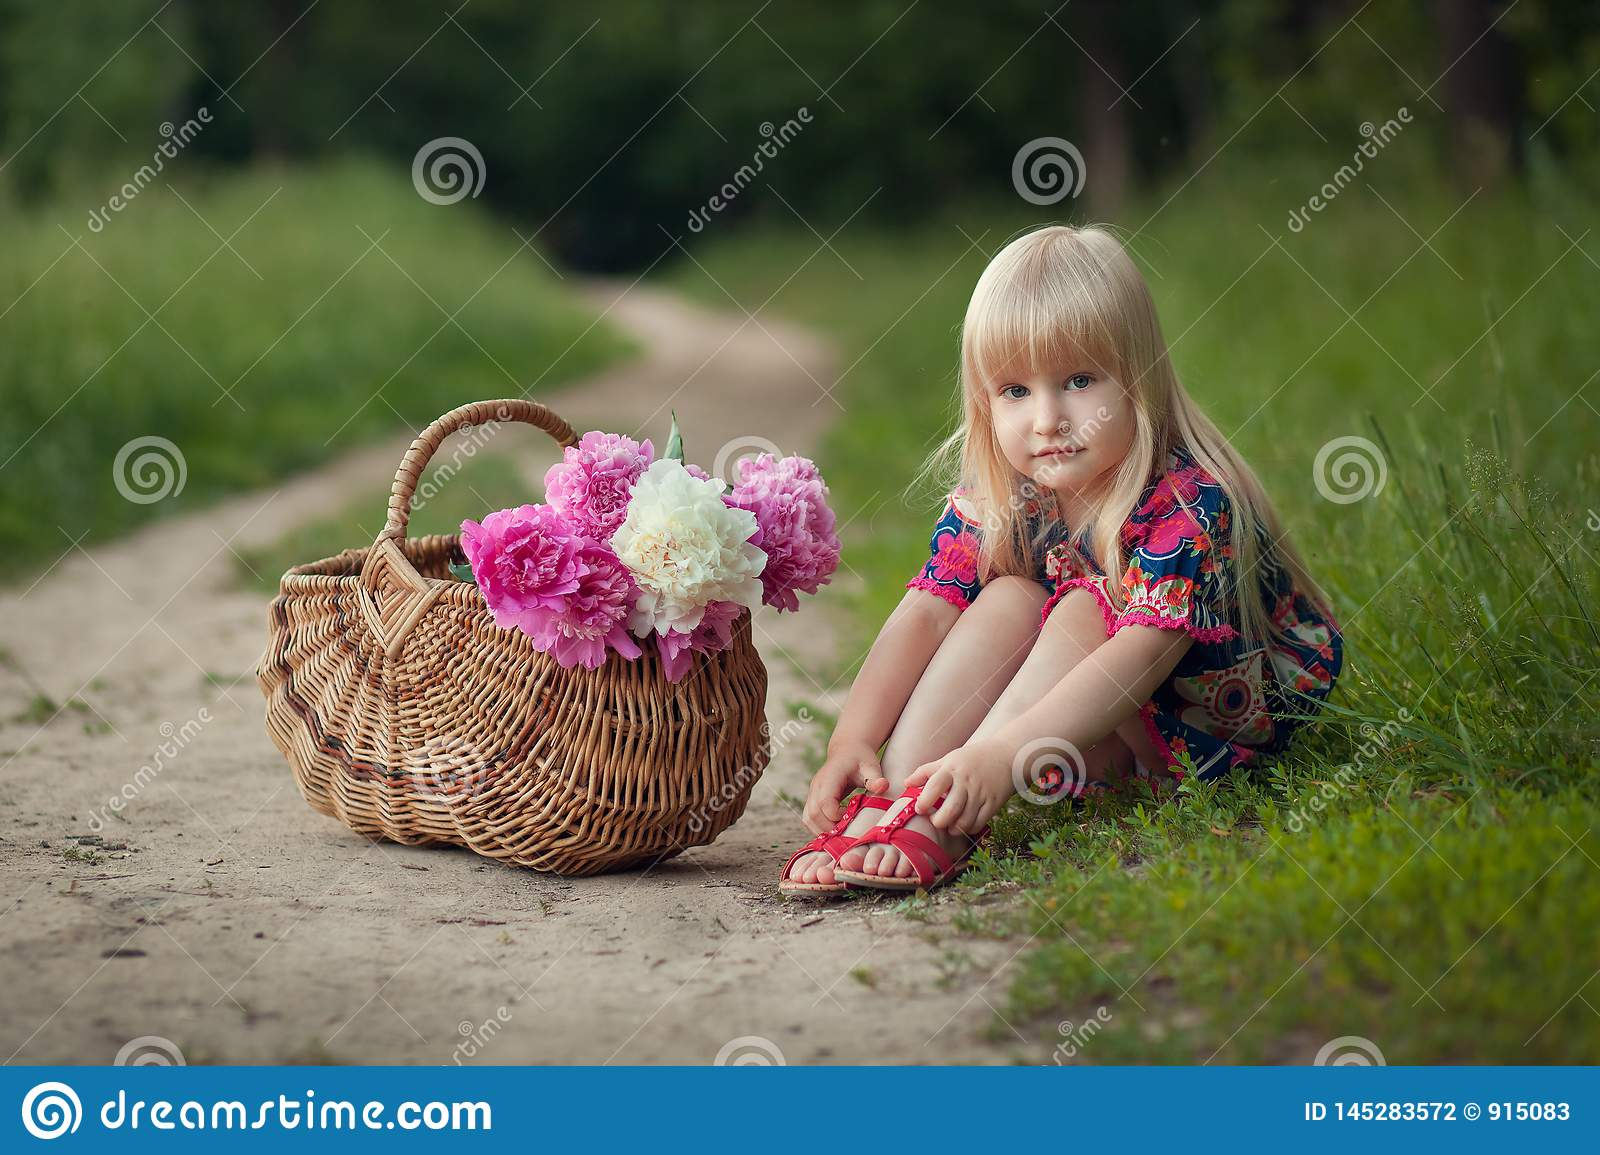 Cute little girl on a forest road with a basket of flowers. The concept of carefree childhood